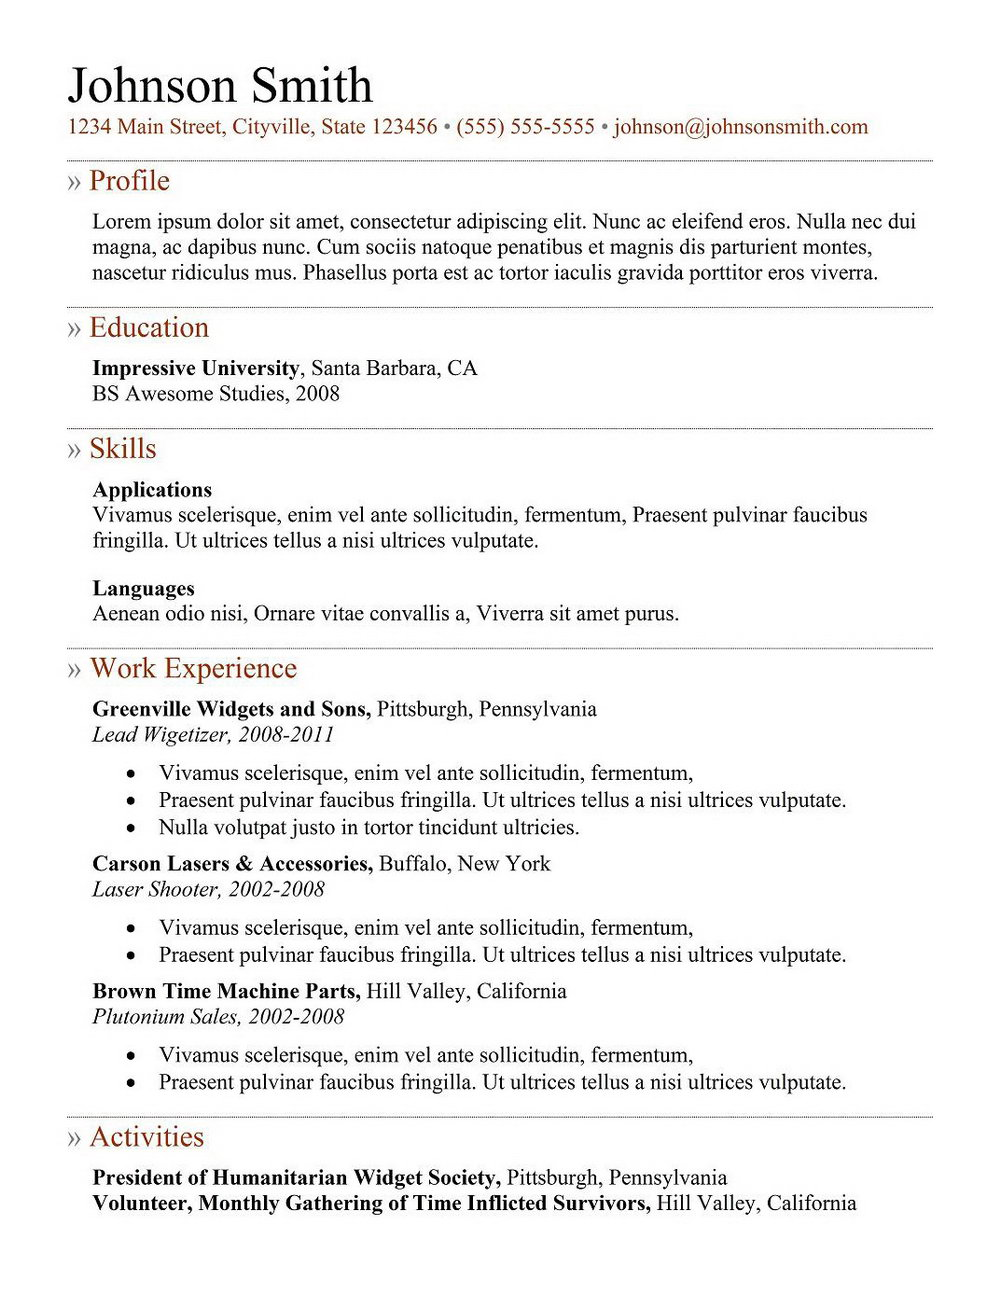 Templates For Professional Resumes